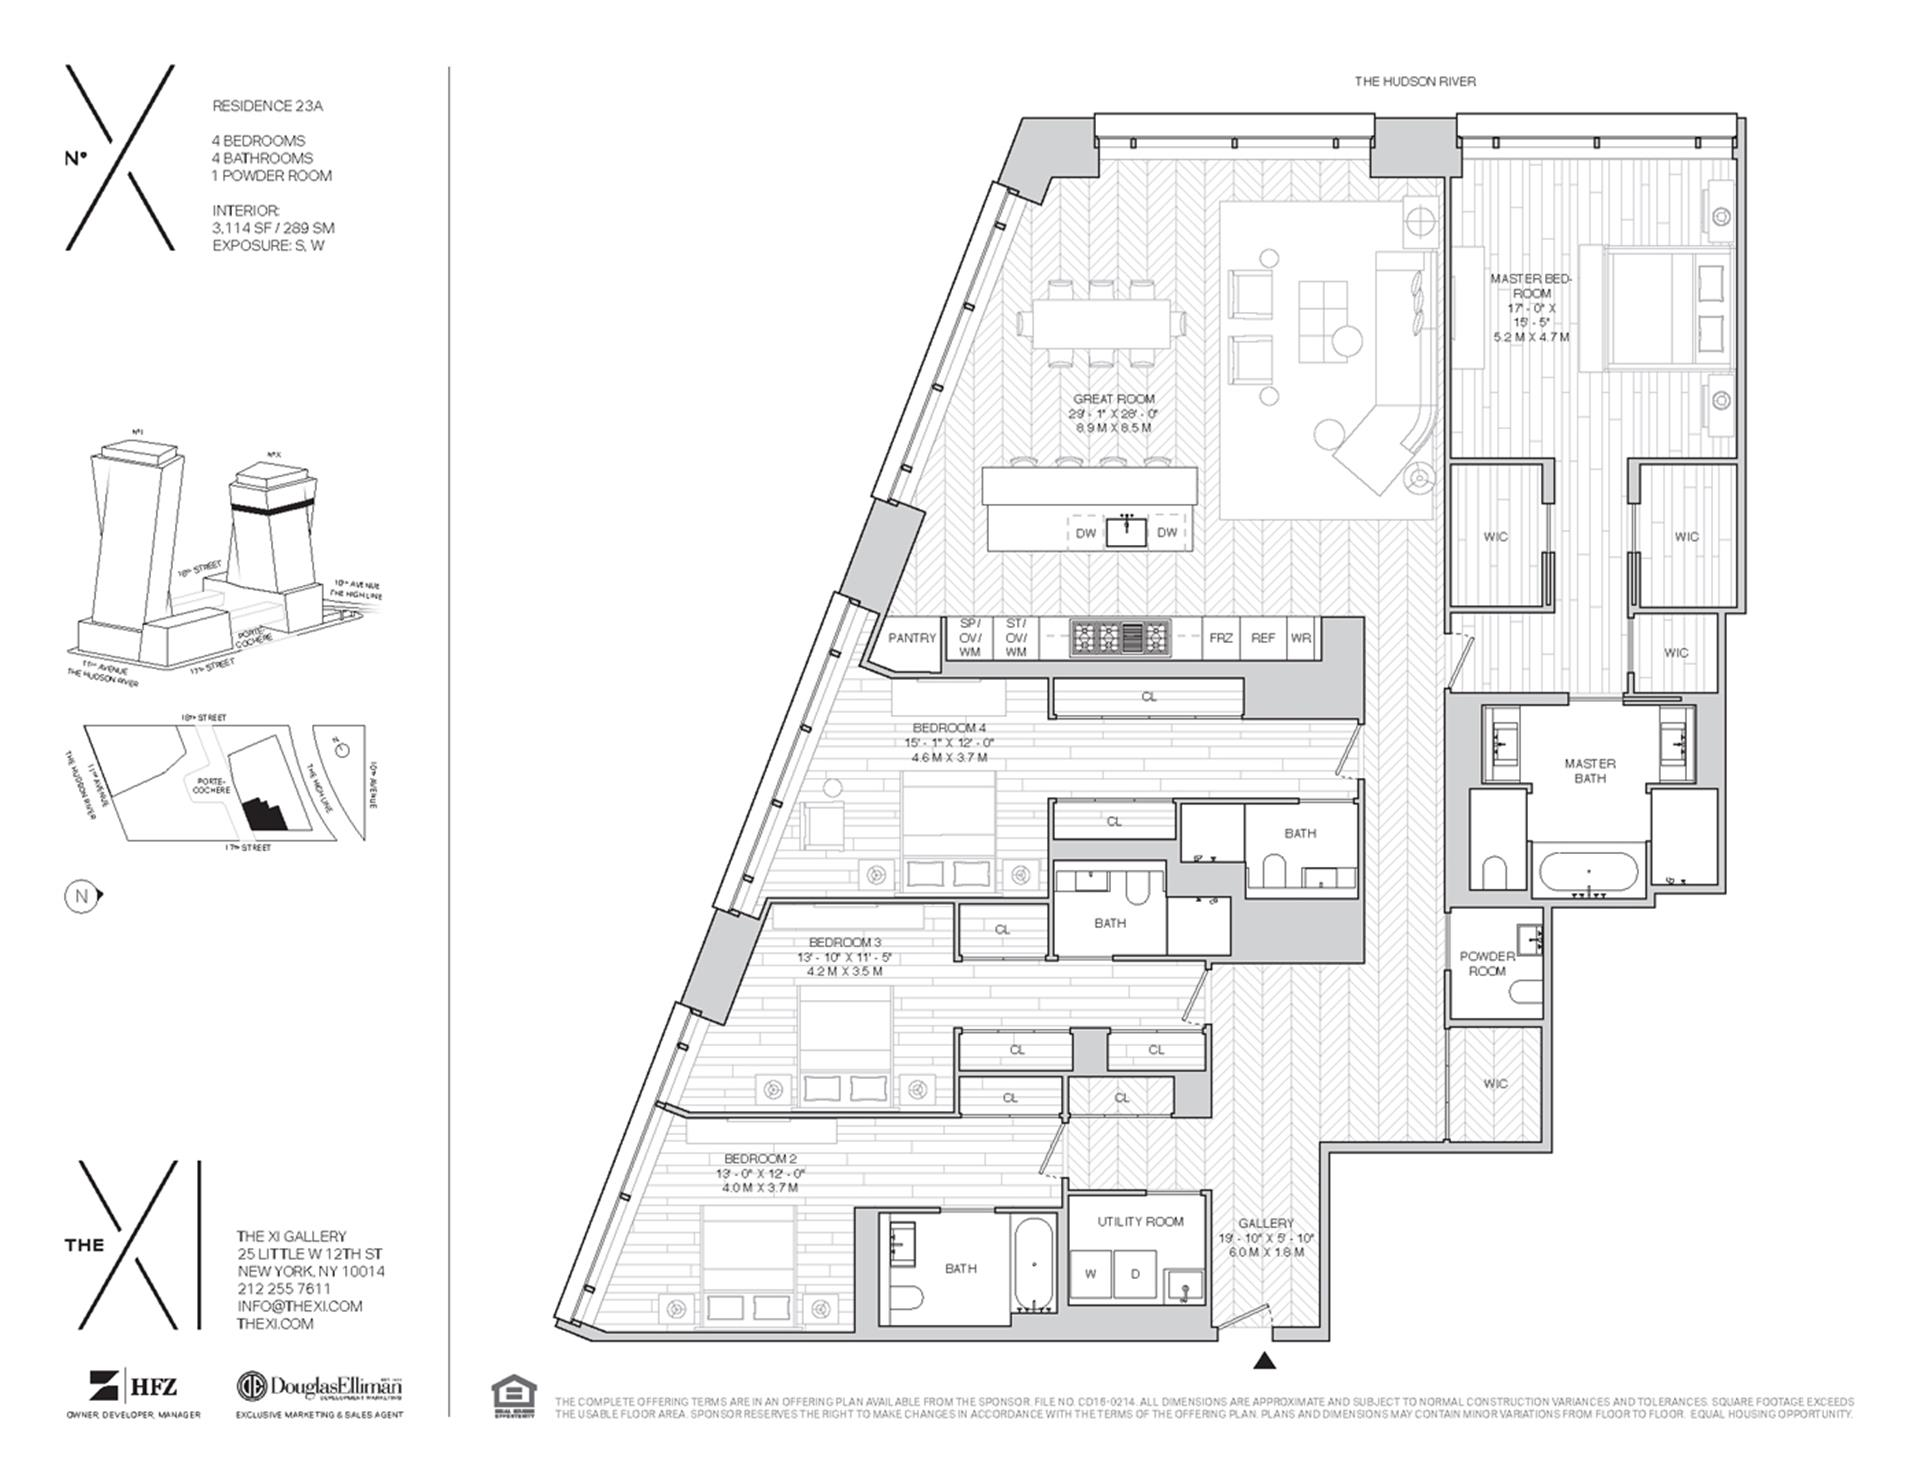 Floor plan of The XI, 76 Eleventh Avenue, X23A - Chelsea, New York